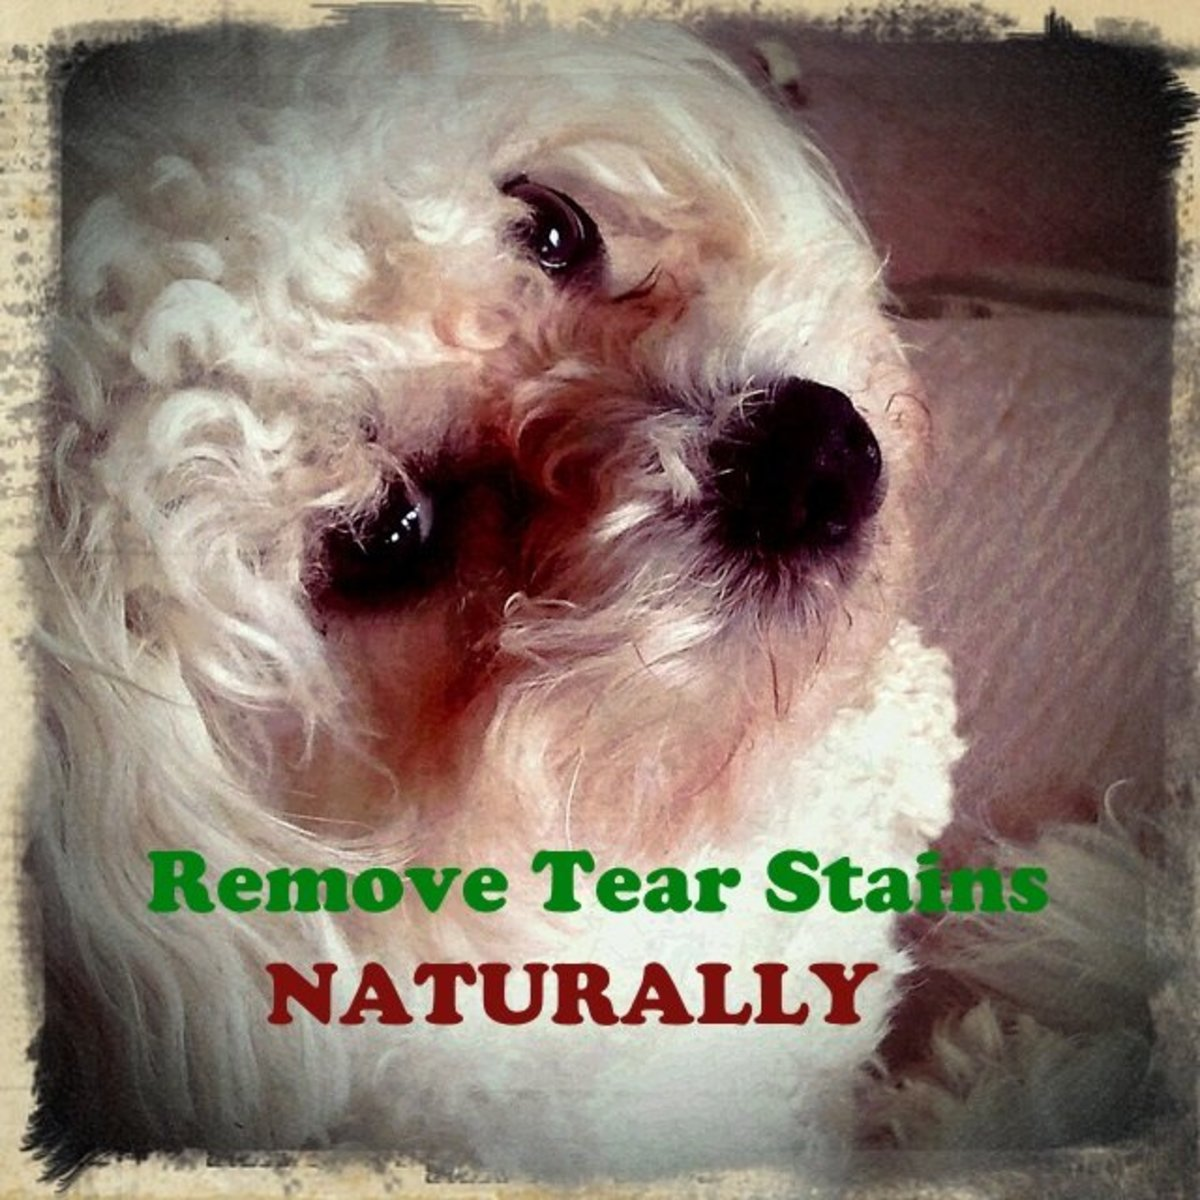 Your dogs tear stains can be removed naturally.